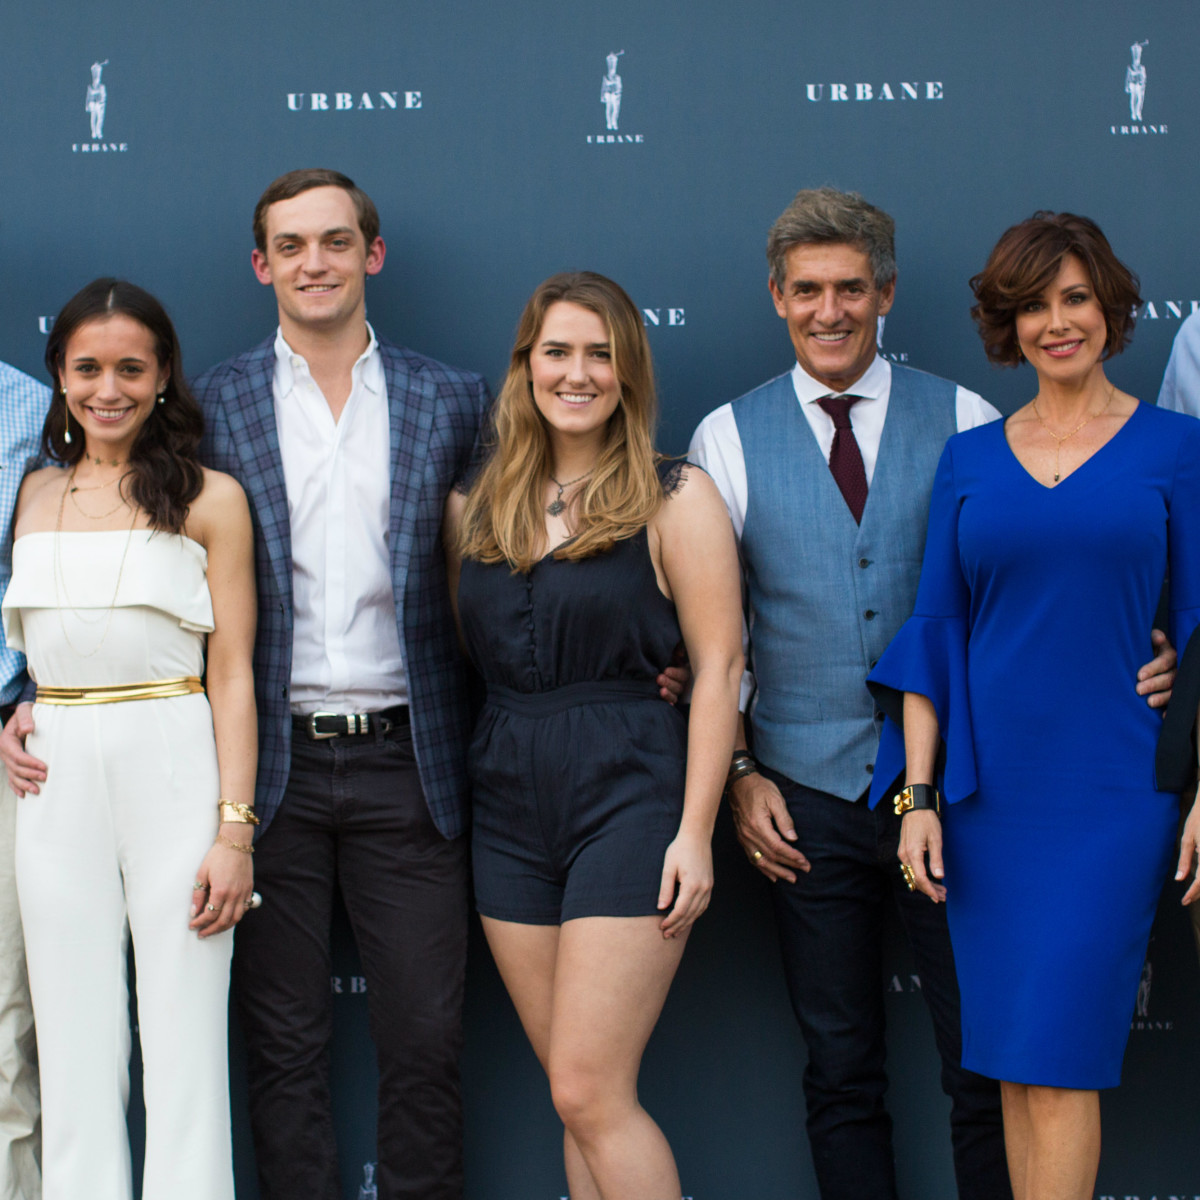 Nicky Florescu, Annabel Massey, Alex Florescu, Isabella Florescu, Nicholas Florescu, Dominique Sachse, William Lobkowicz